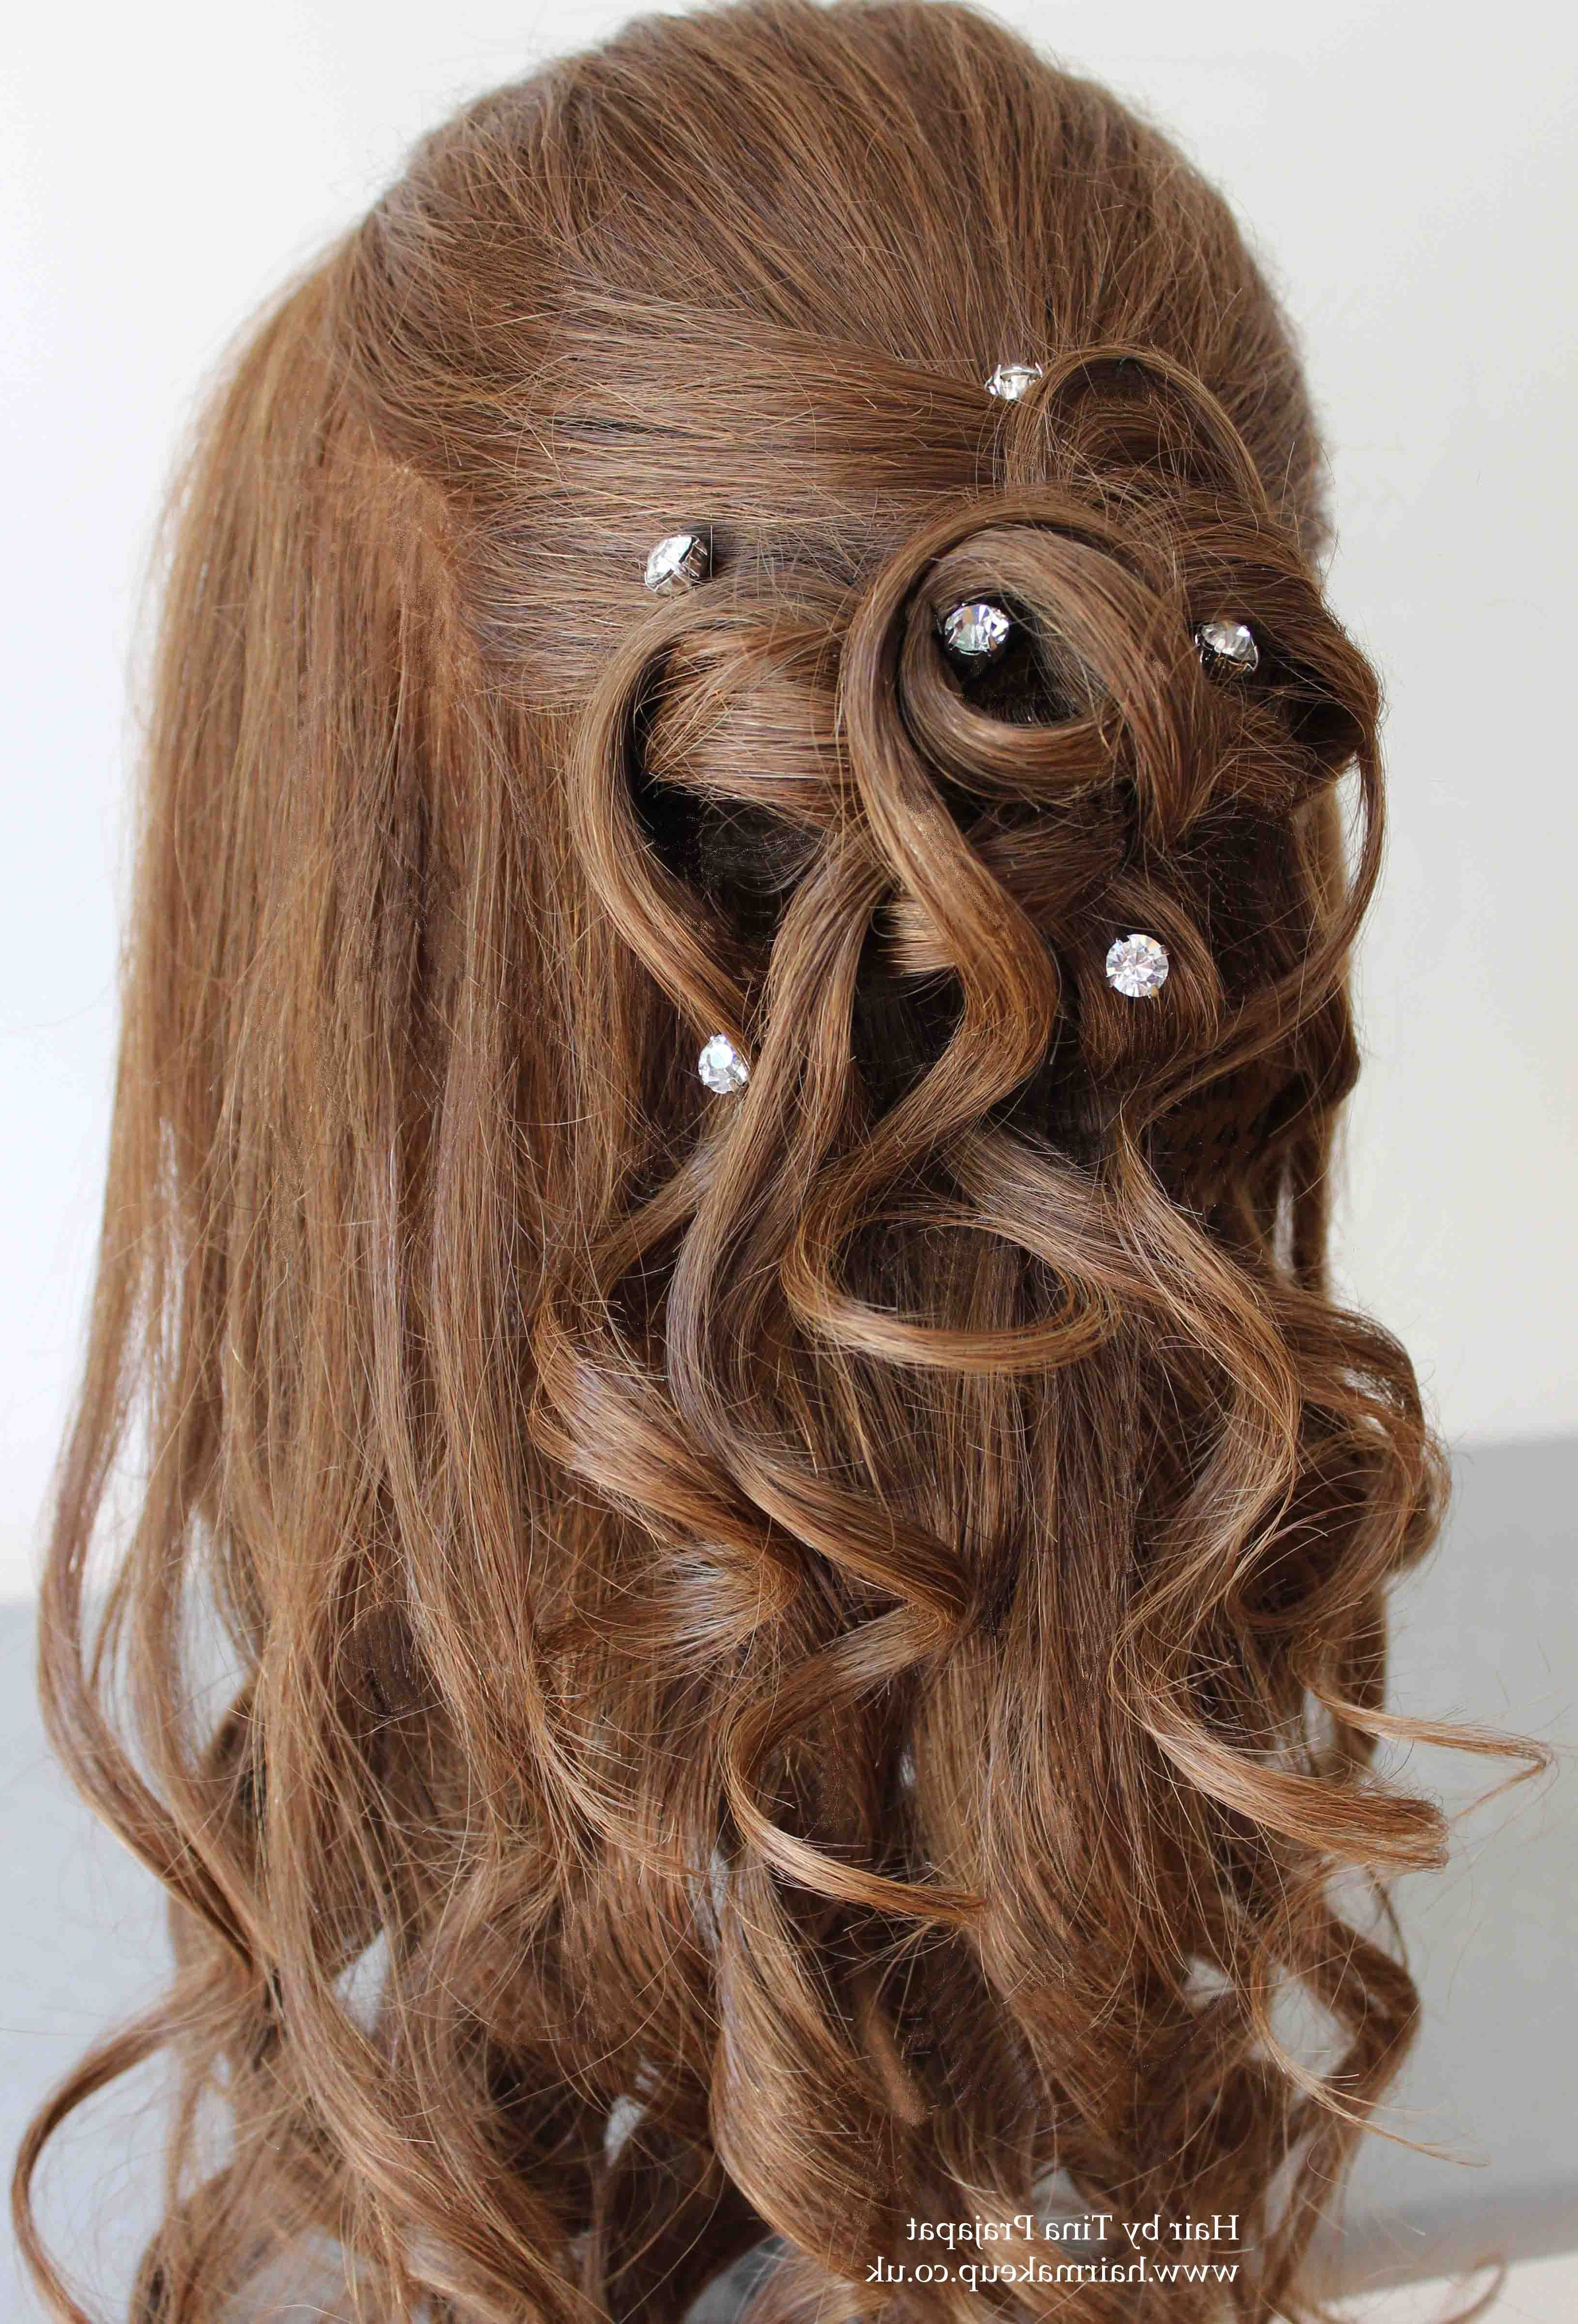 Famous Wedding Hairstyles For Down Straight Hair Intended For Transform Half Up Hairstyles For Long Straight Hair On Wedding (View 6 of 15)